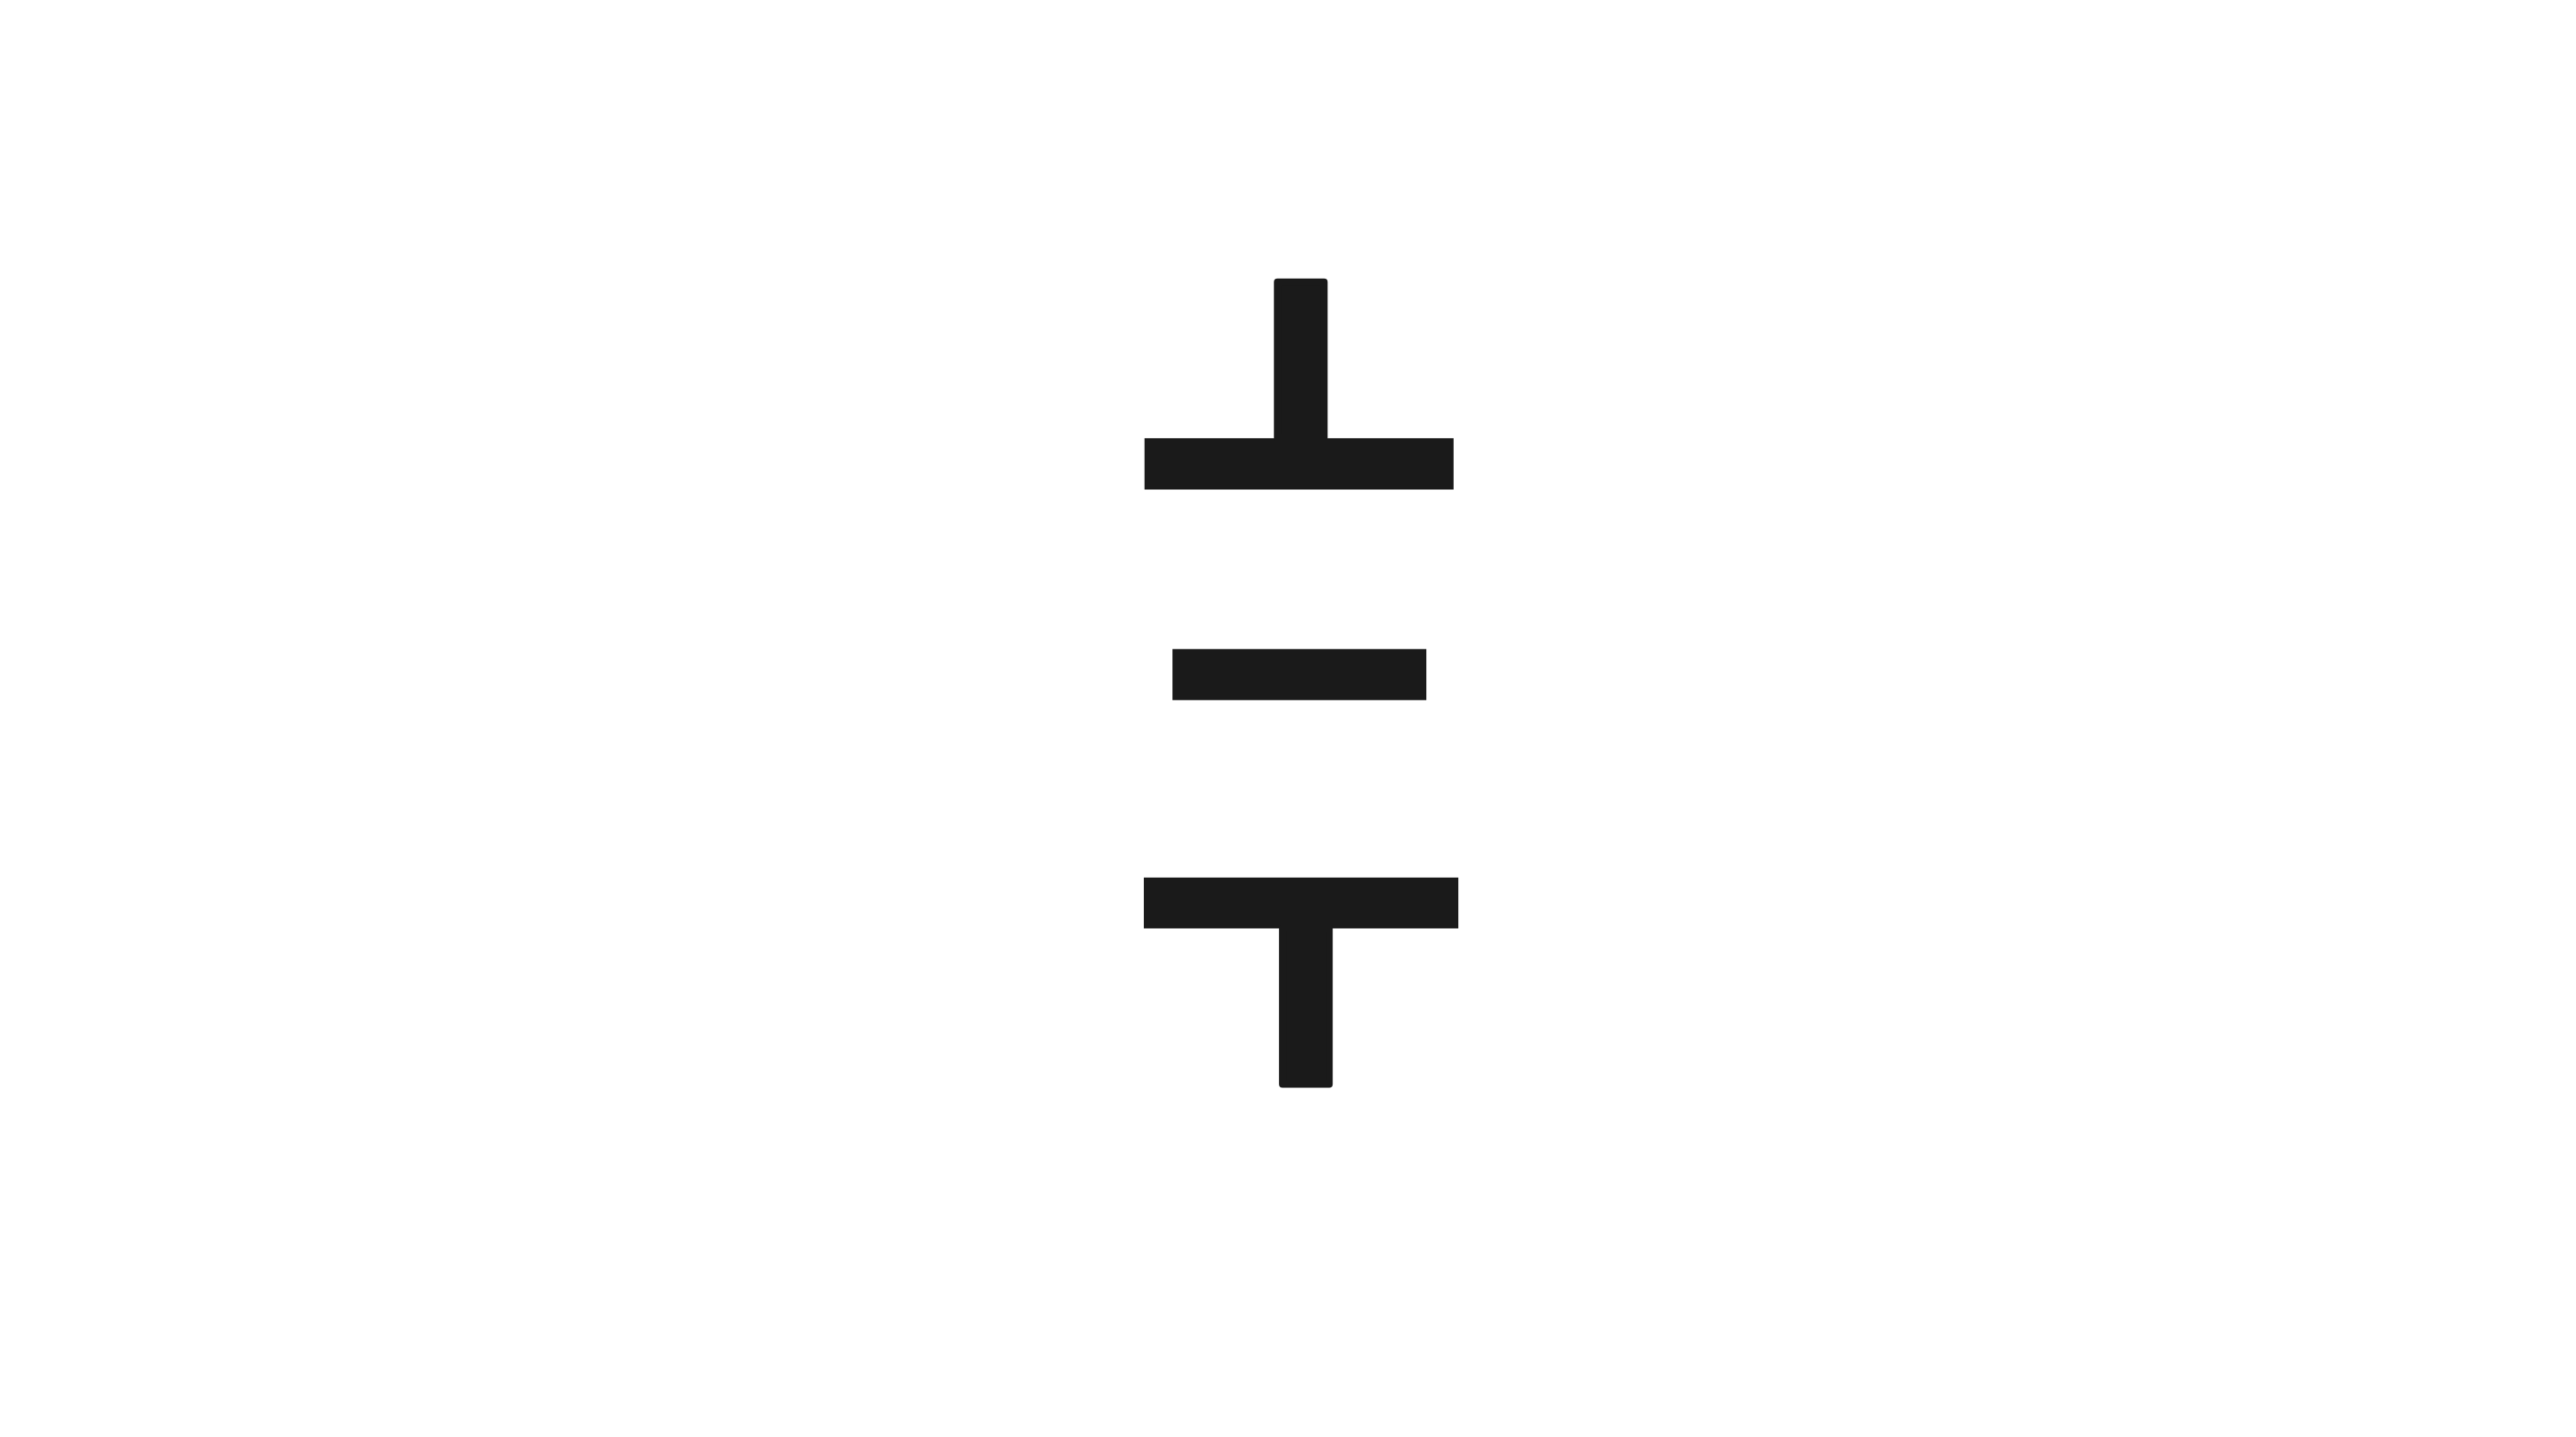 Proposal: Change Ether currency symbol from Ξ to